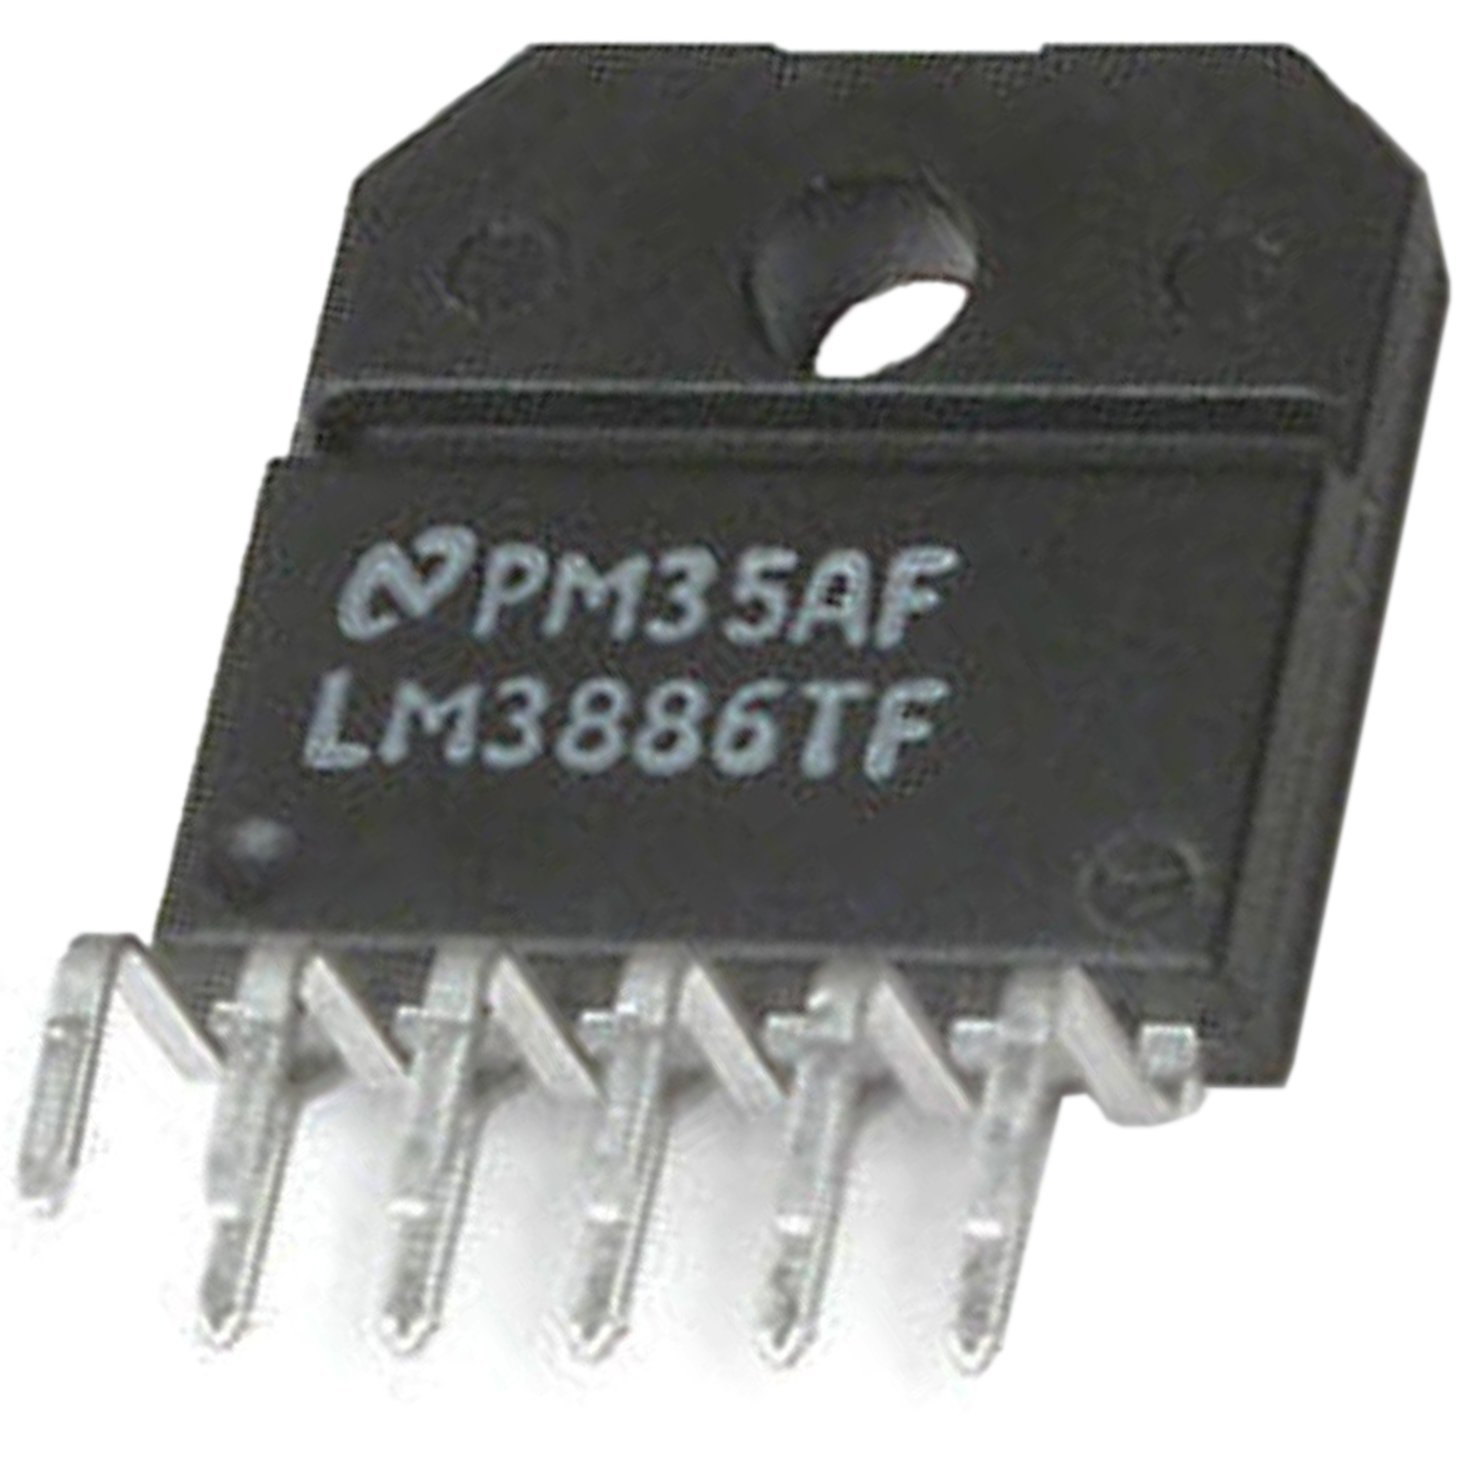 LM3886TF LM3886 TO-220 High-Performance 68W Audio Power Amplifier